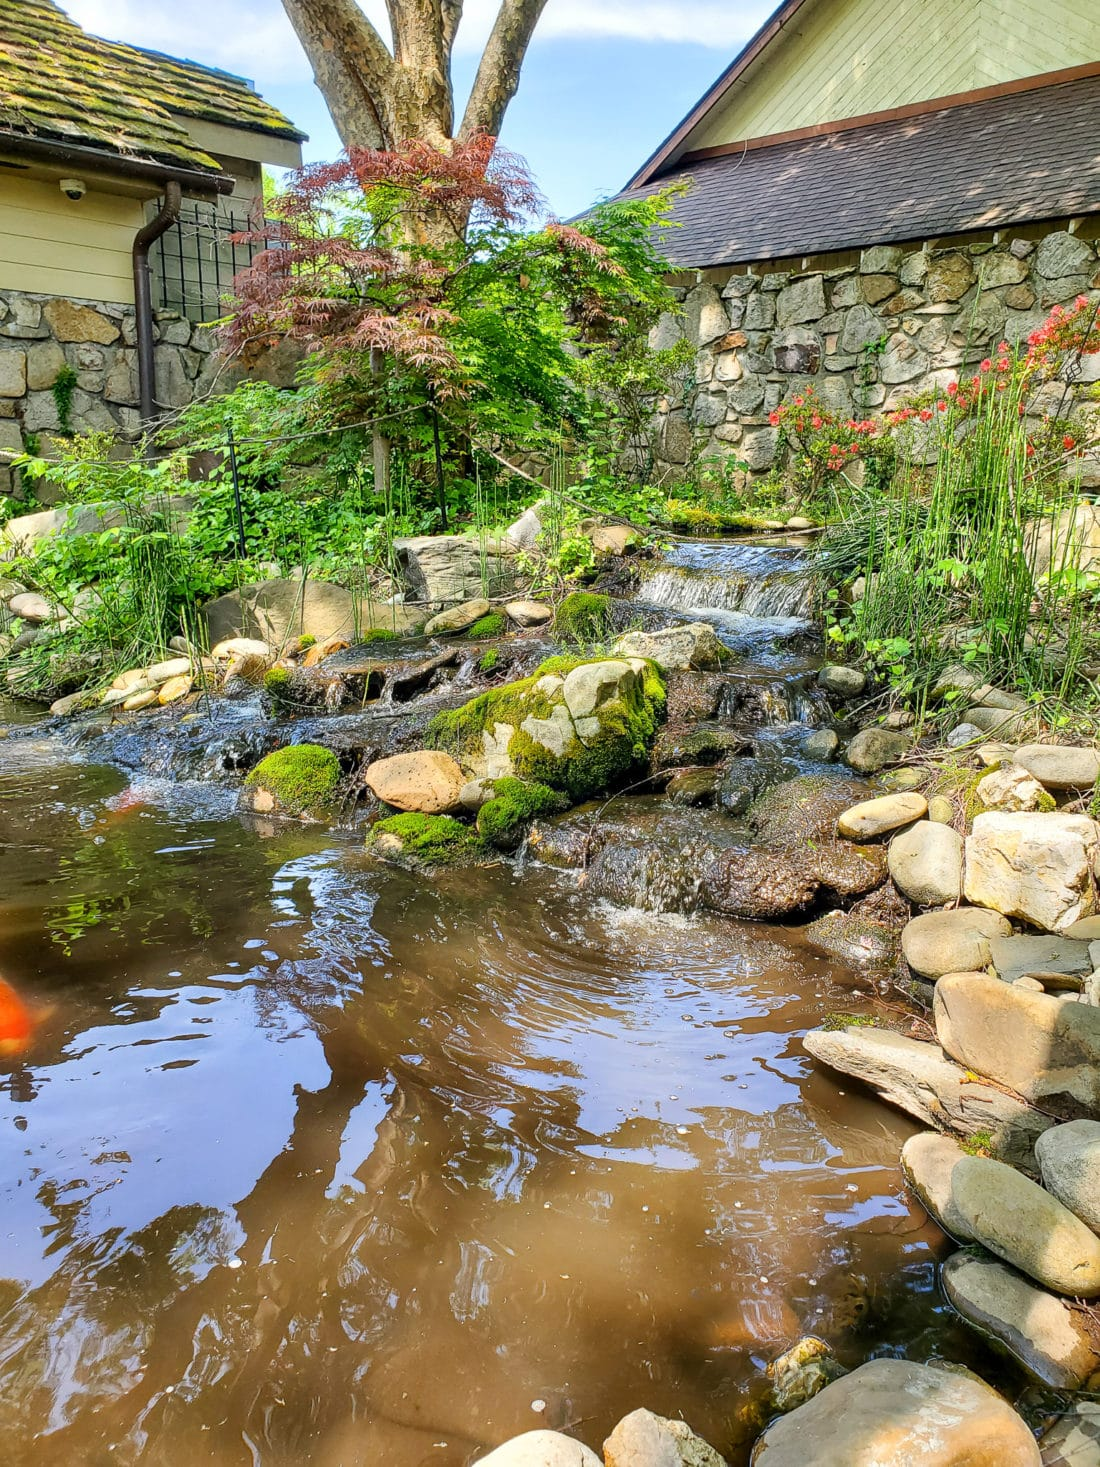 The Old Mill Pottery Cafe & Grille Pond. The Pottery House Cafe serves freshly made sandwiches, salads, and hearty entrees on dishes created by our potters right next door. Read my full review which includes photos of this beautiful and delicious location in Pigeon Forge, TN.